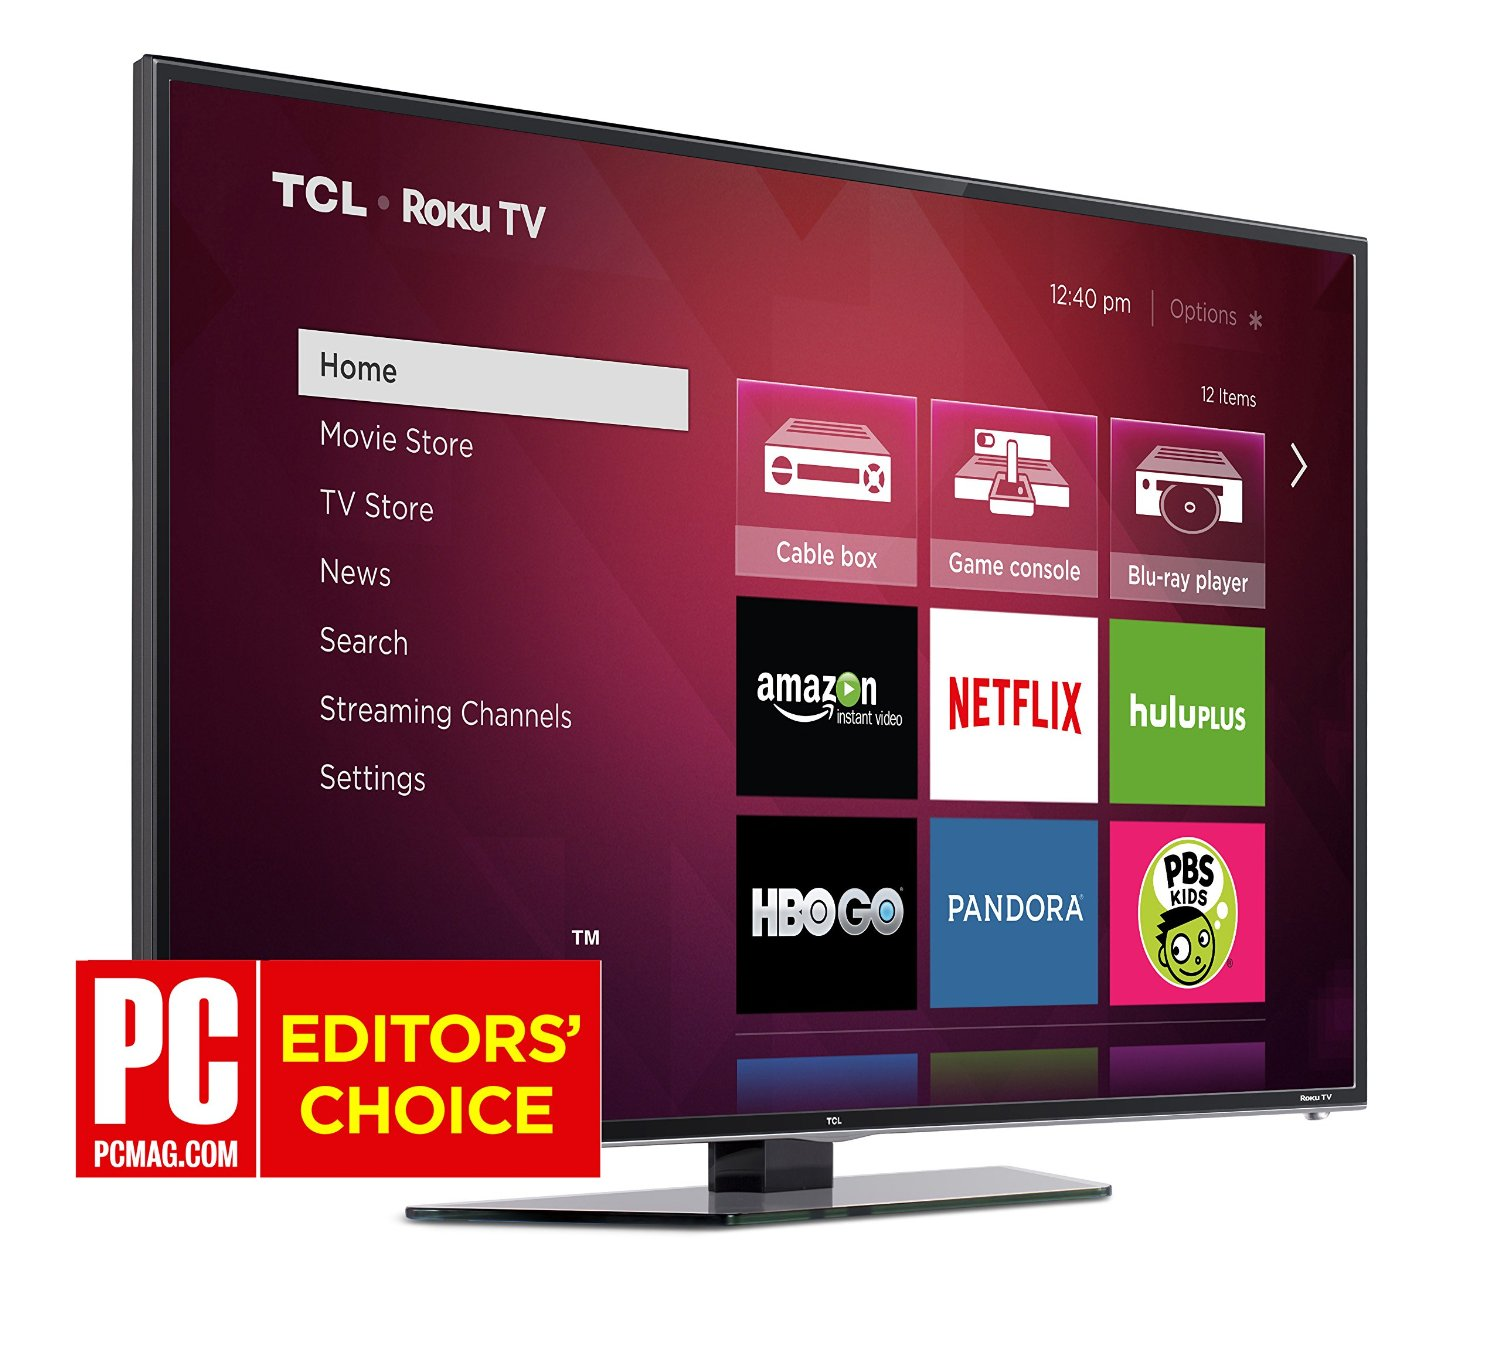 TCL 40 Inch Smart LED TV Review And Price